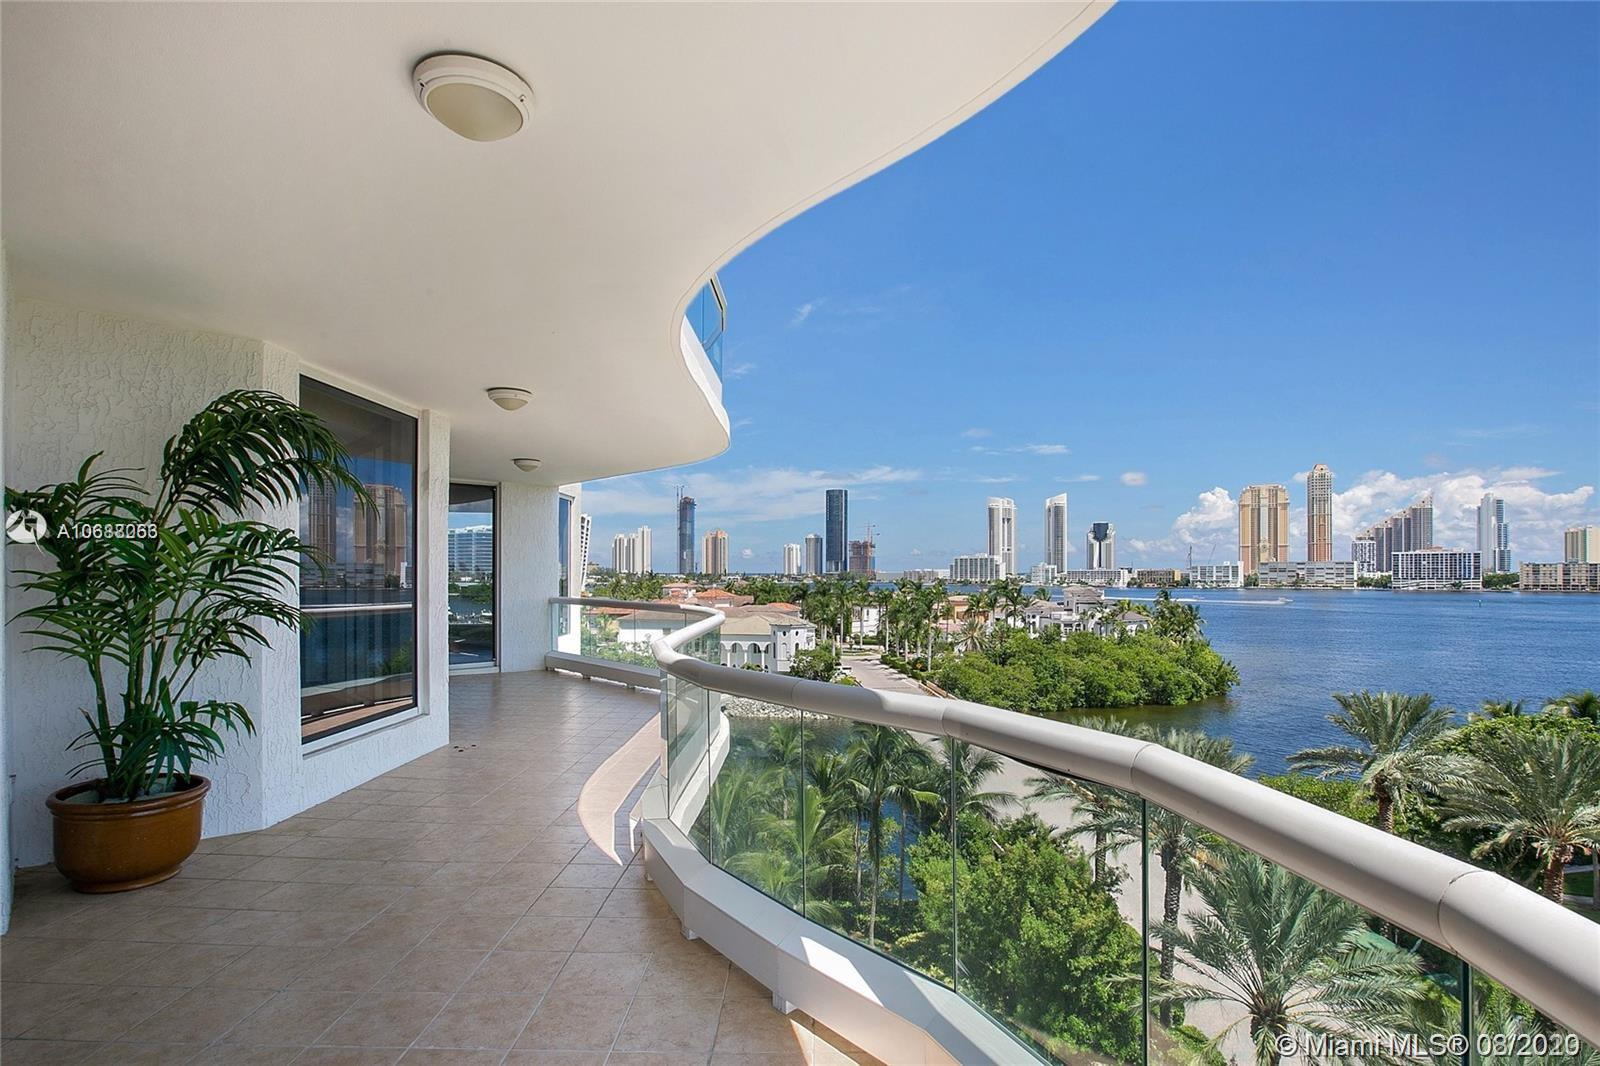 Bella Mare Williams Island #608 - 6000 ISLAND BLVD #608, Aventura, FL 33160